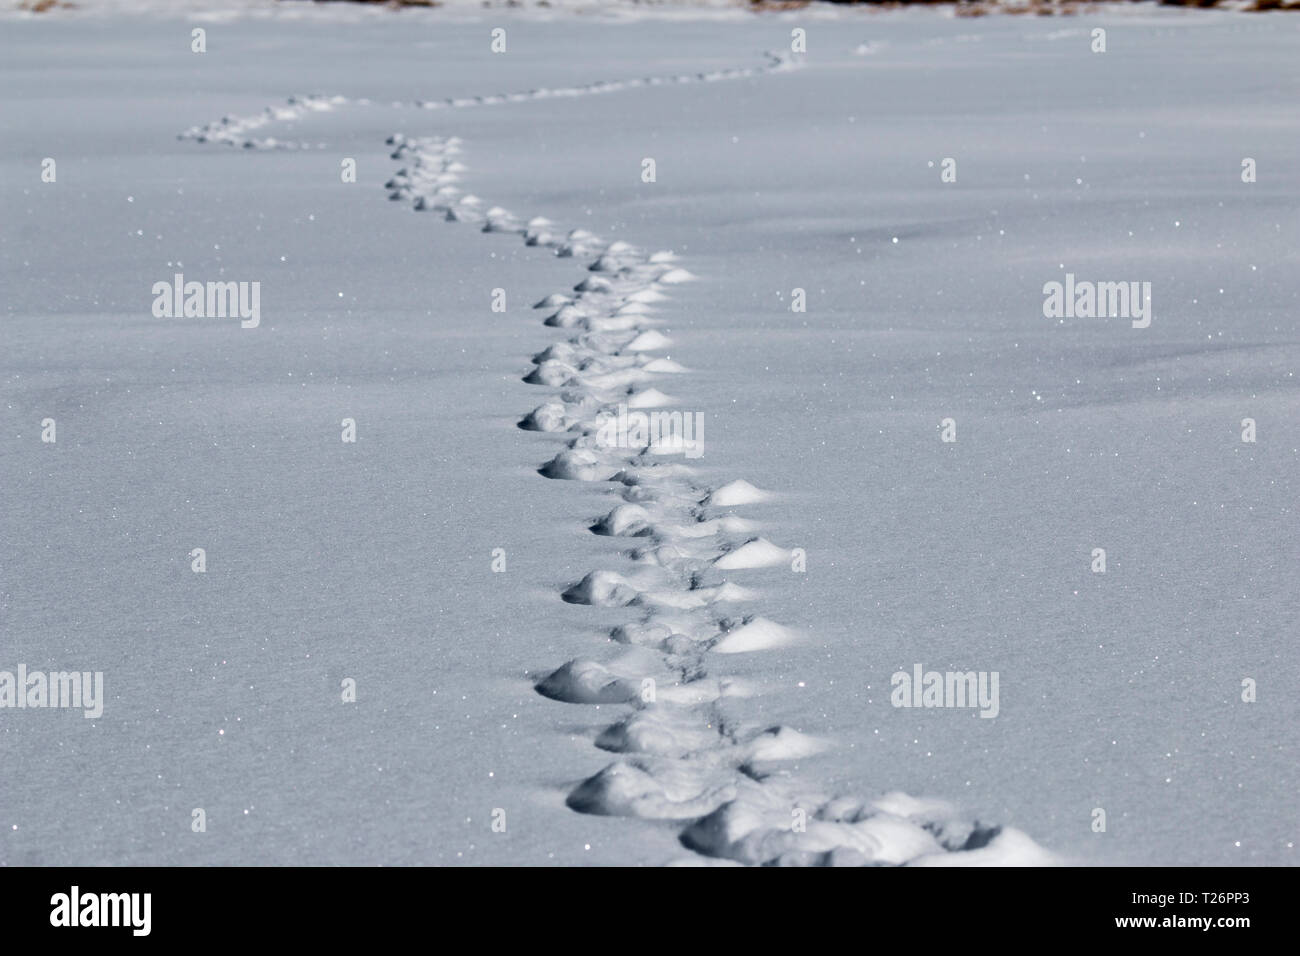 Line of Animal Tracks in the snow - Stock Image